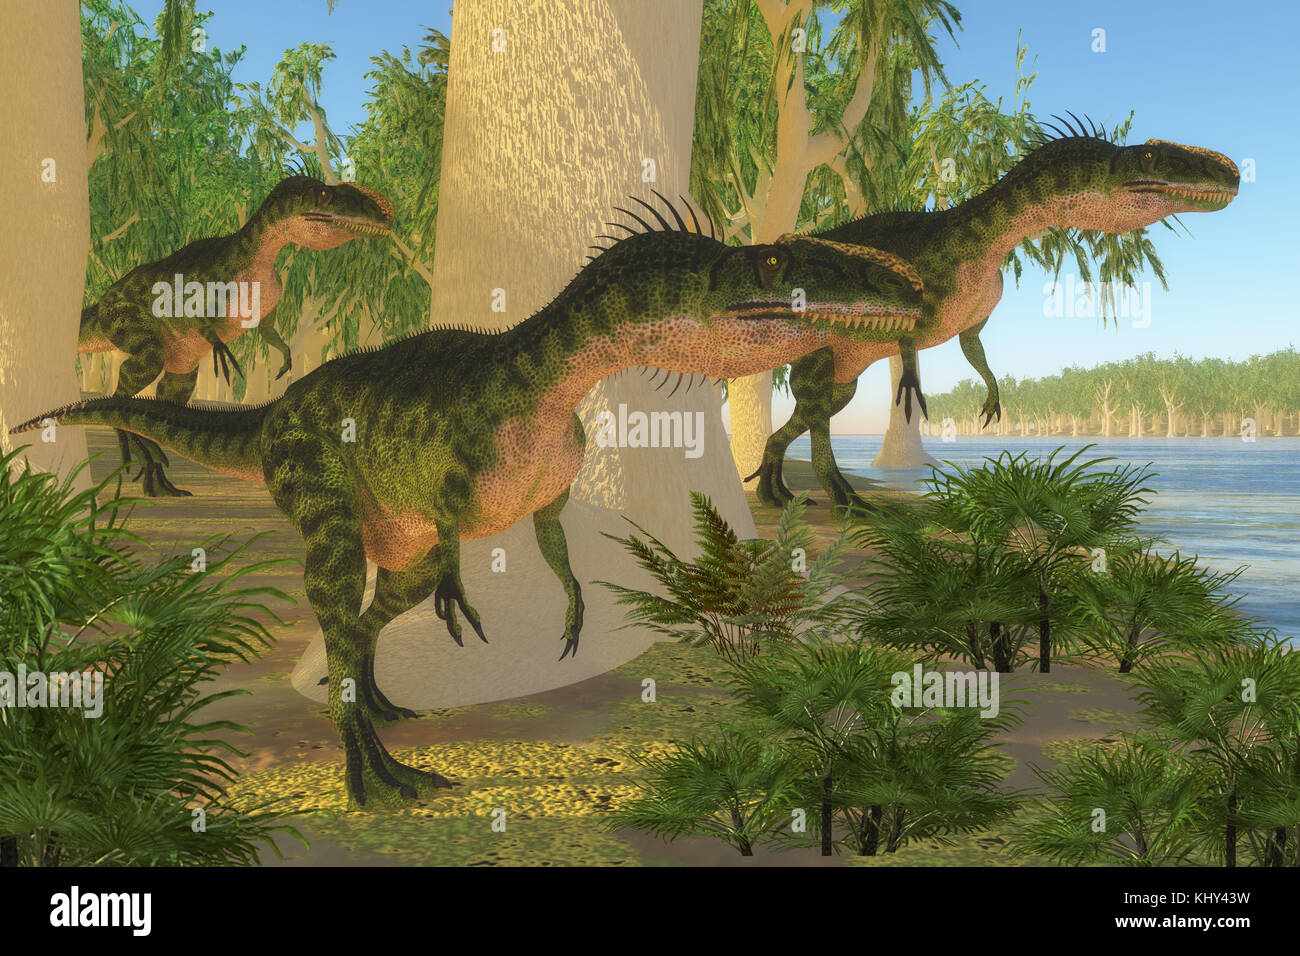 Monolophosaurus Dinosaurs - A group of Monolophosaurus dinosaurs come to a shore to drink and watch for prey in - Stock Image